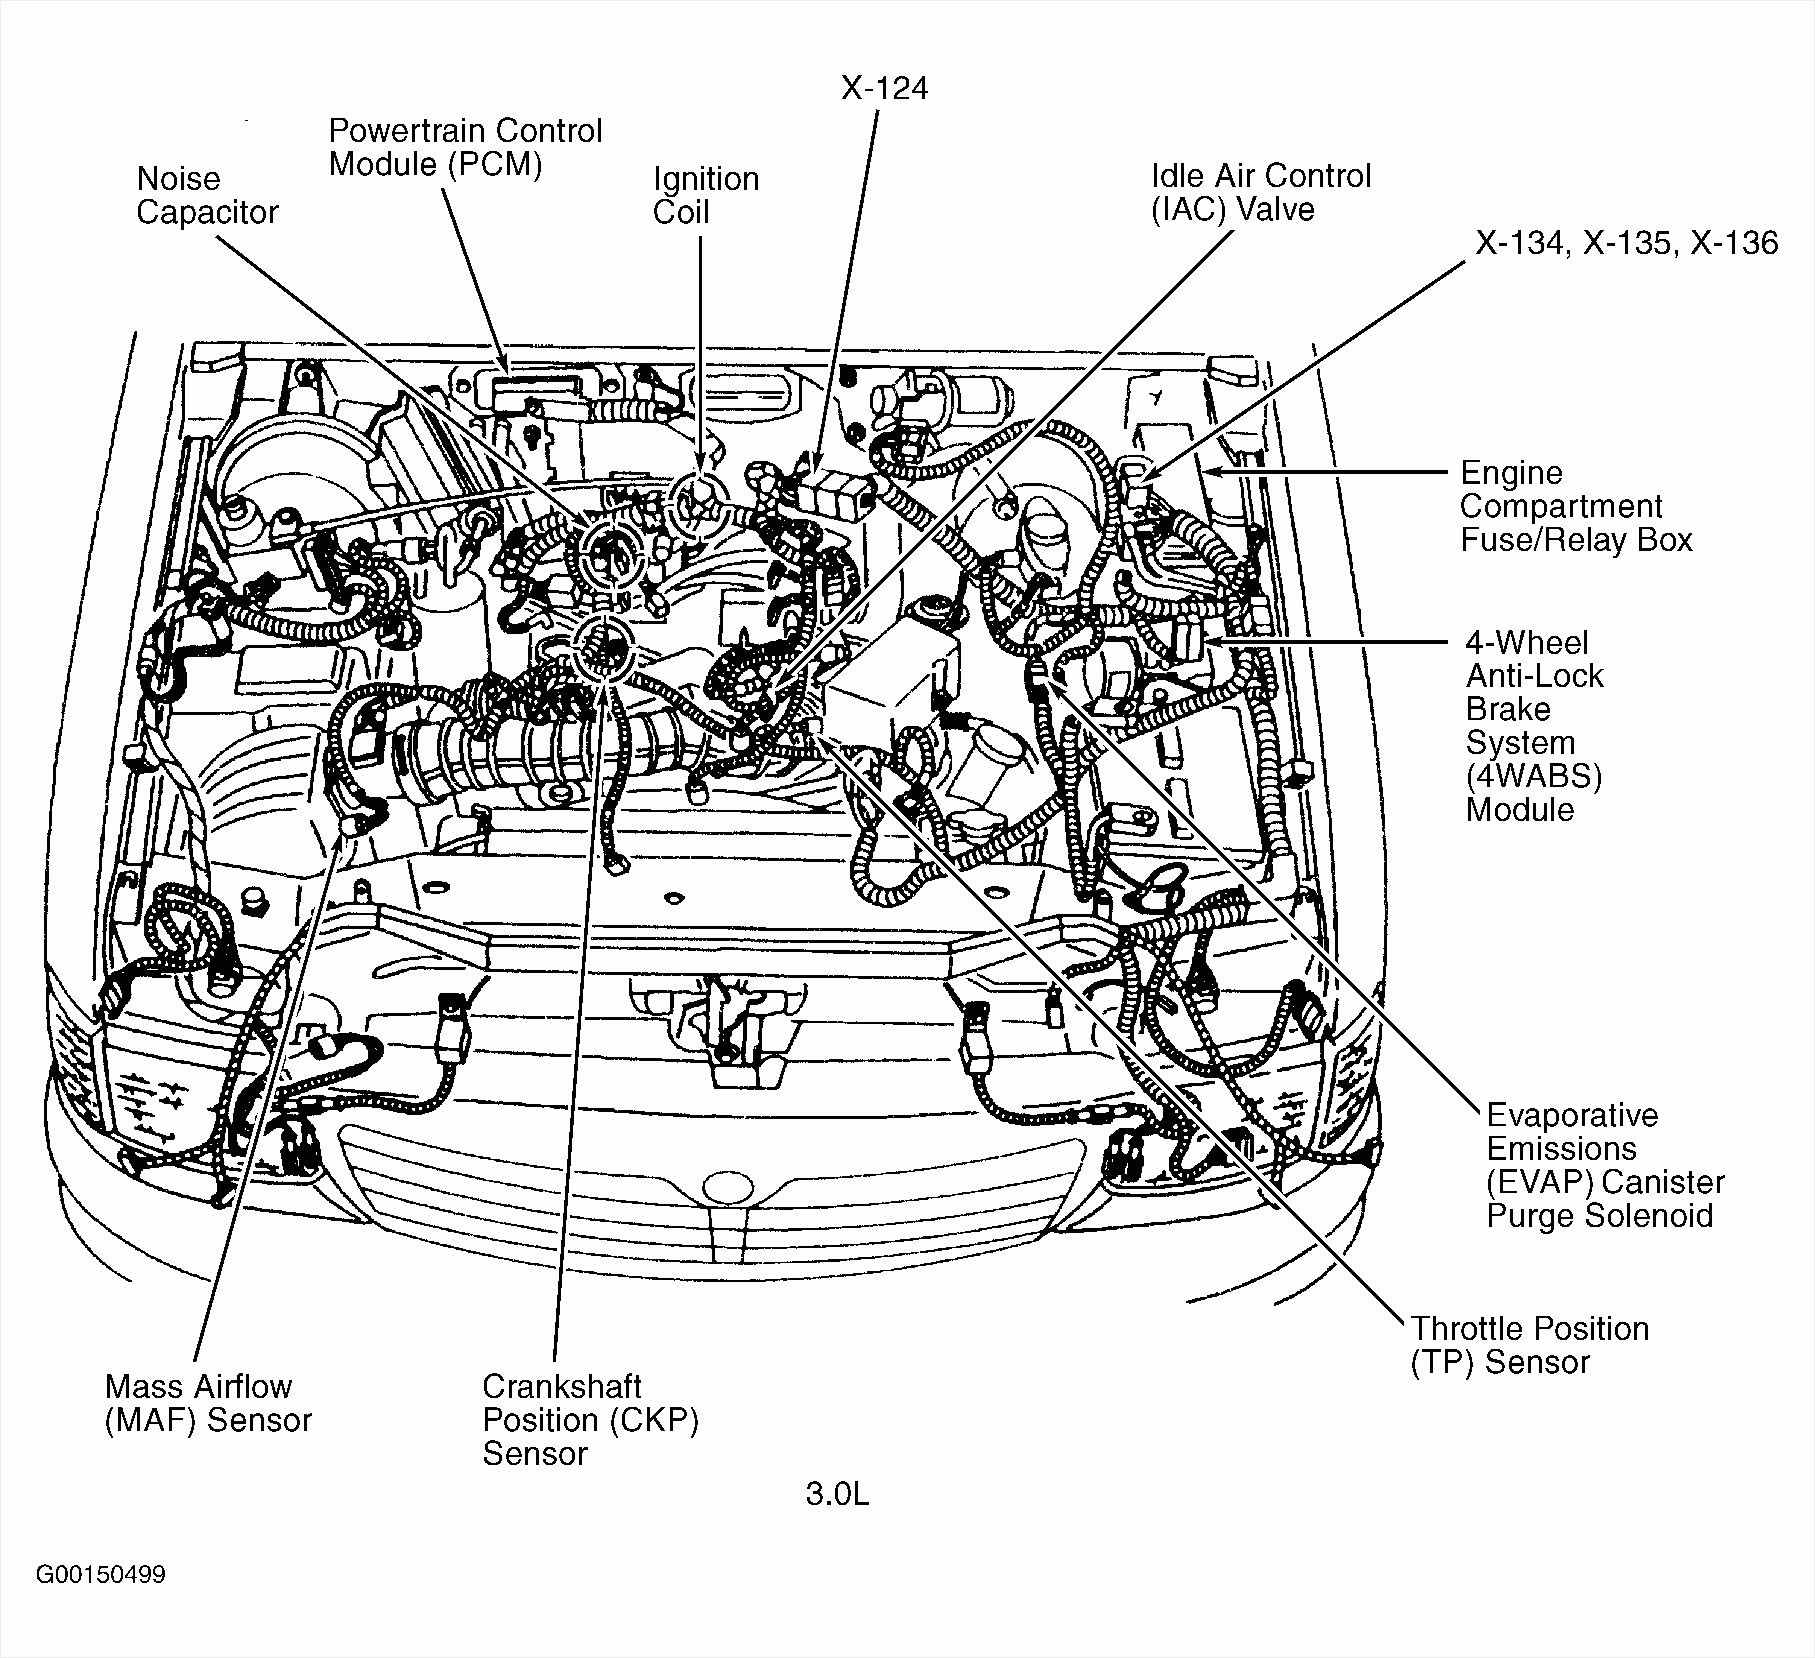 2002 ford Explorer Xlt Engine Diagram ford Ranger 3 0 V6 Engine Diagram ford Wiring Diagrams Instructions Of 2002 ford Explorer Xlt Engine Diagram